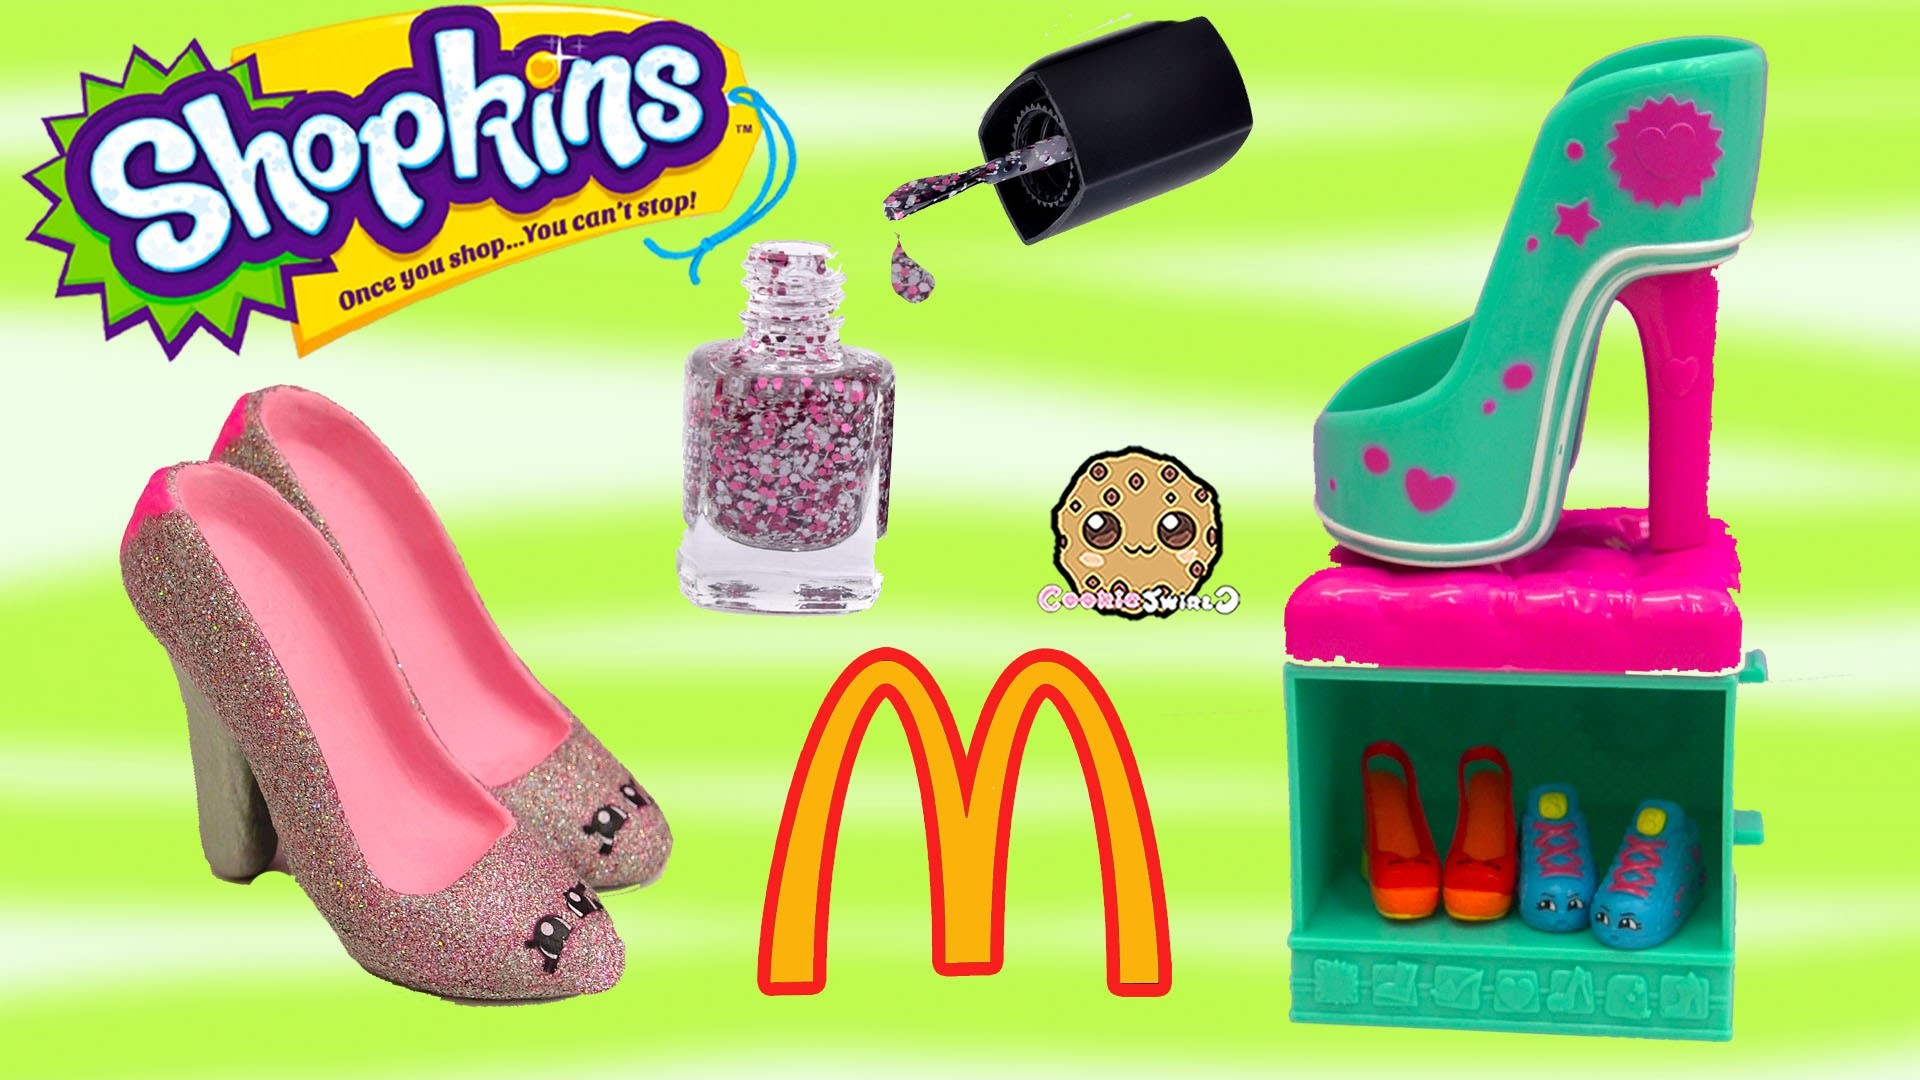 DIY Nail Polish Custom Shopkins Season 3 Mcdonalds Happy Meal Exclusive Toy Easy Craft Video